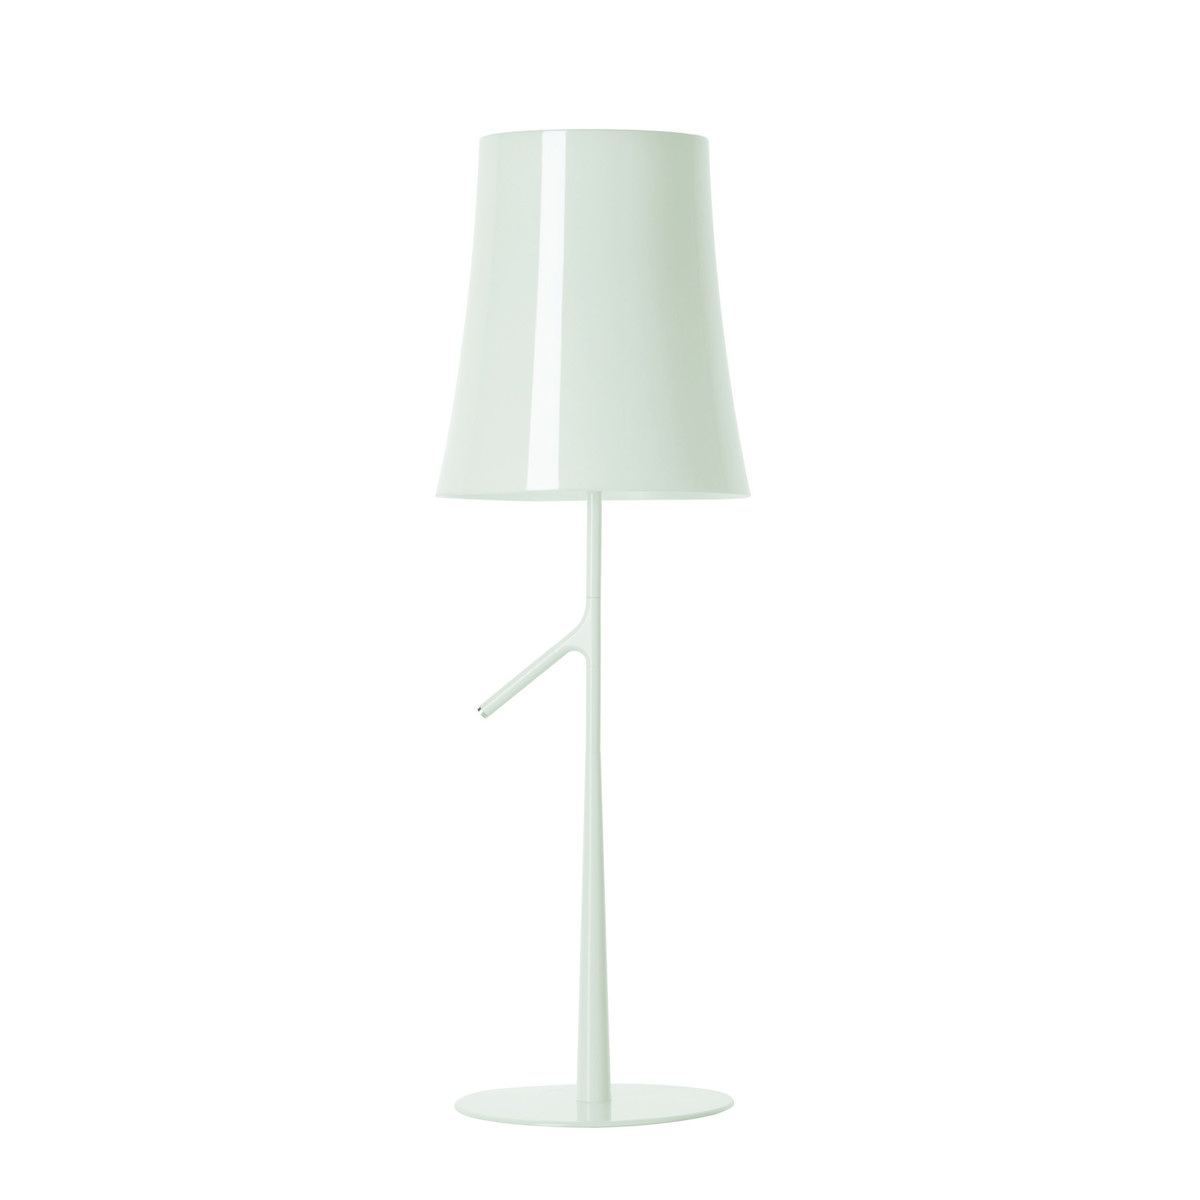 Birdie Table Lamp Small dimmable E27 20w white